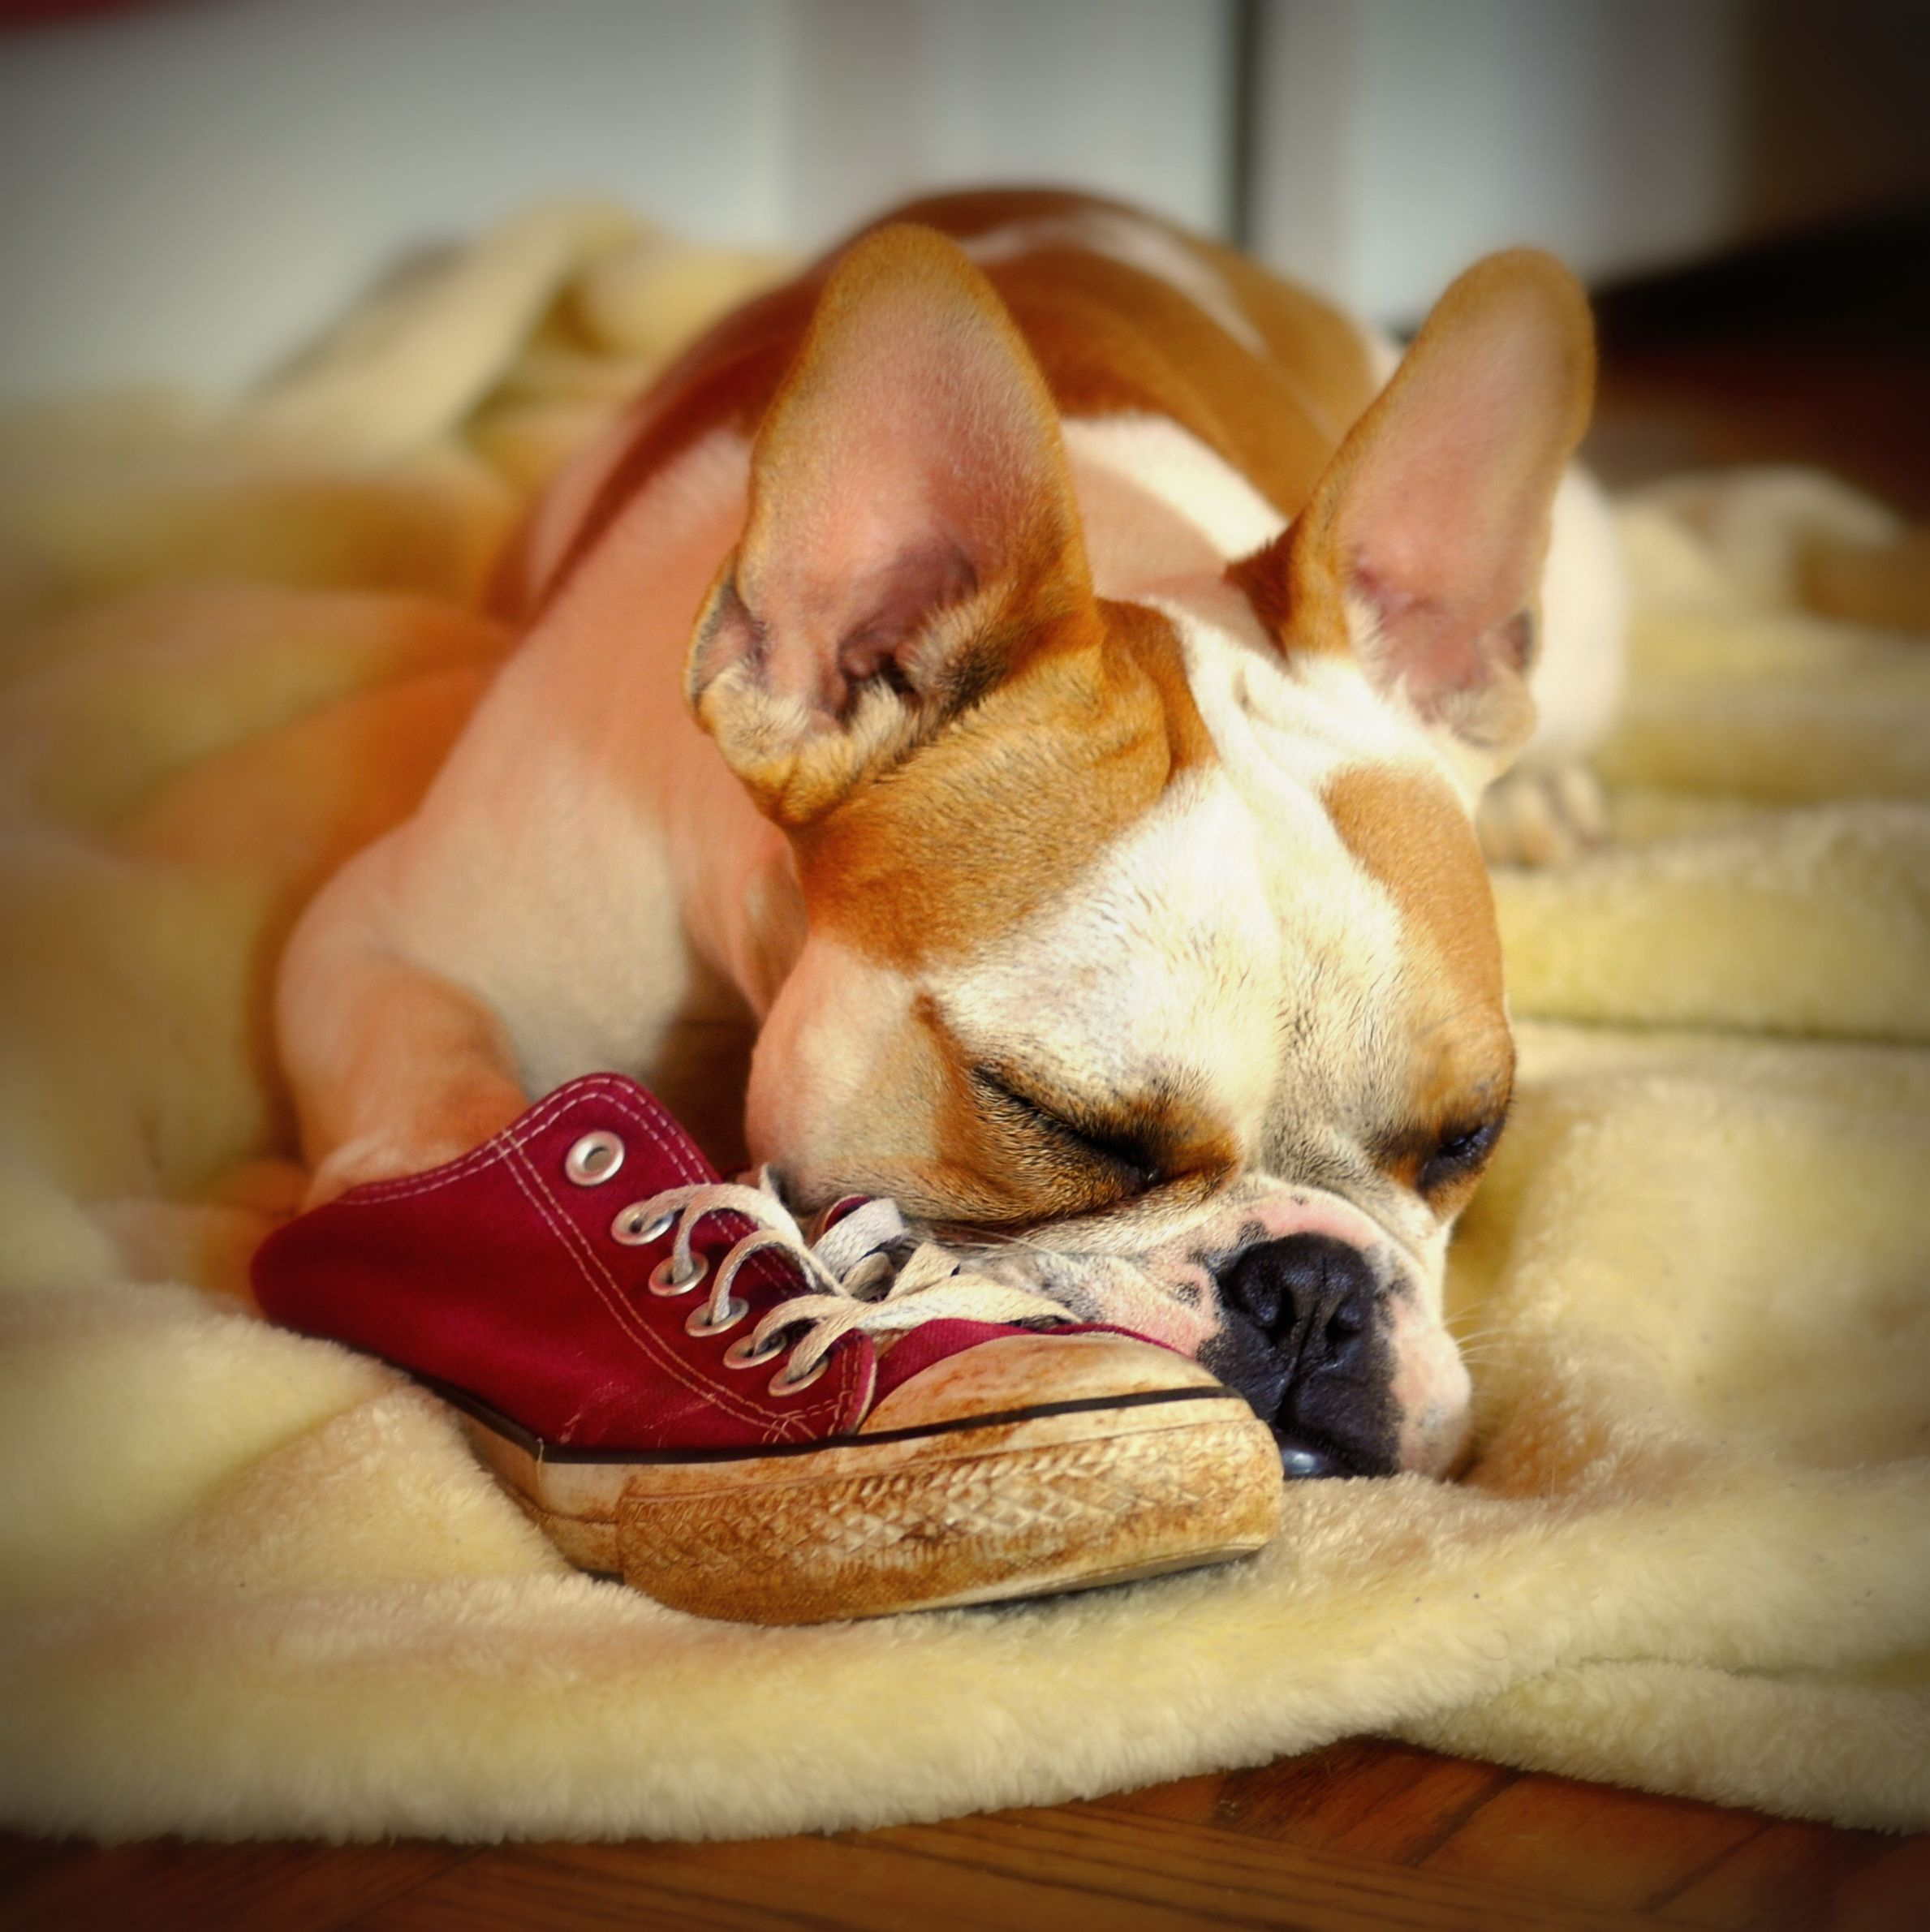 The Napping Enthusiast tries a shoe for a pillow.